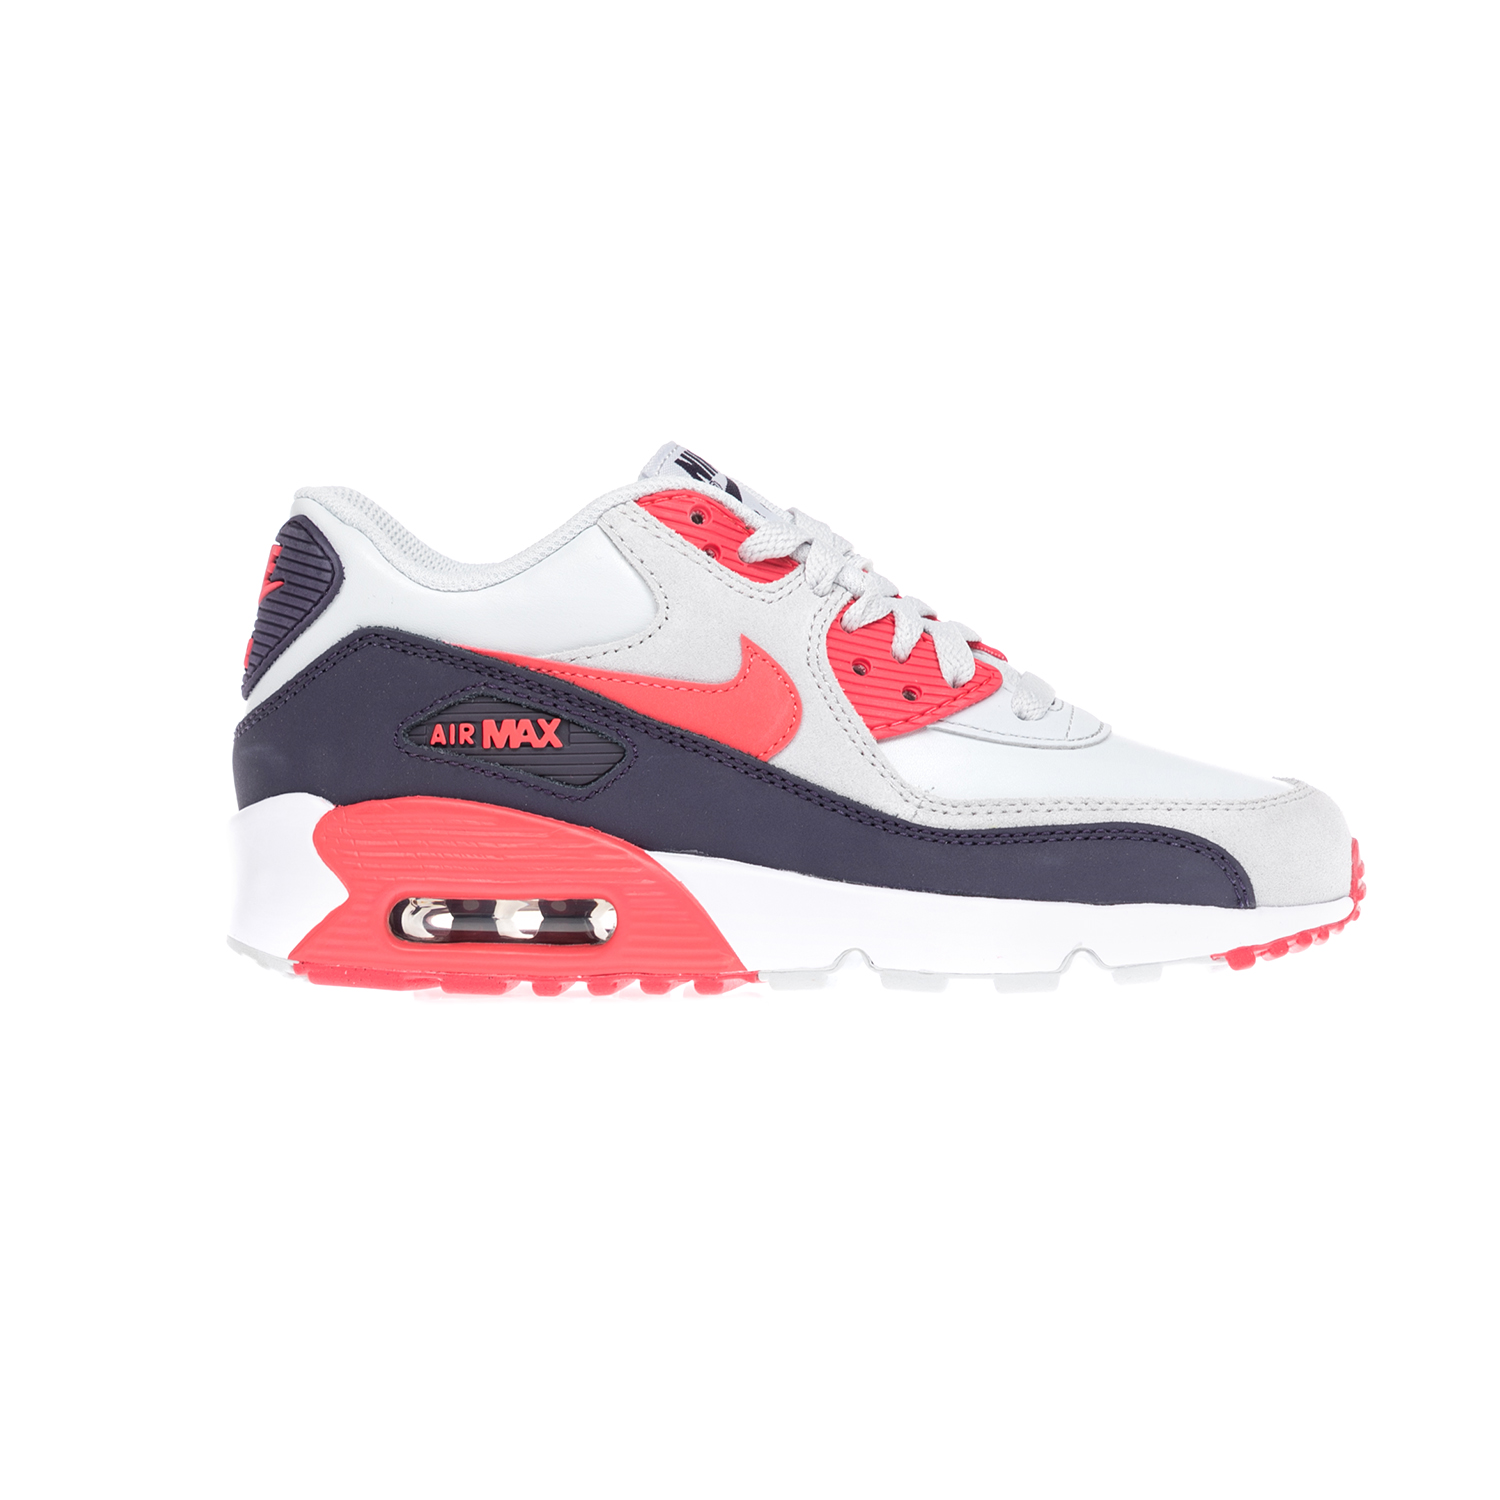 NIKE - Παιδικά παπούτσια NIKE AIR MAX 90 LTR (GS) άσπρα-μπλε